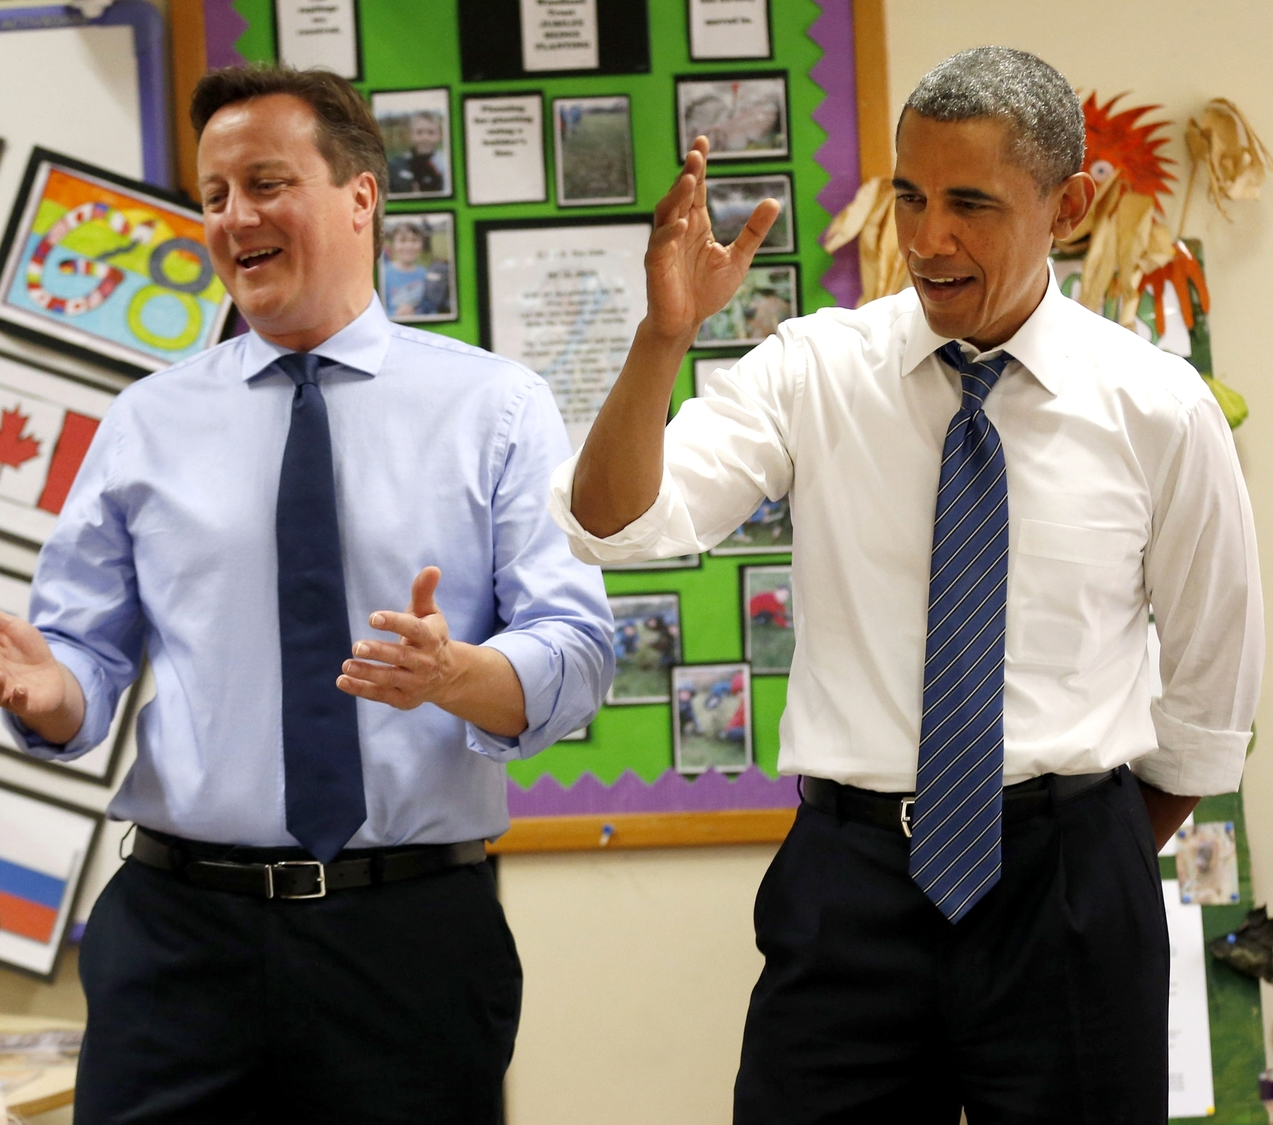 Prime Minister David Cameron and US President Barack Obama at Enniskillen integrated school